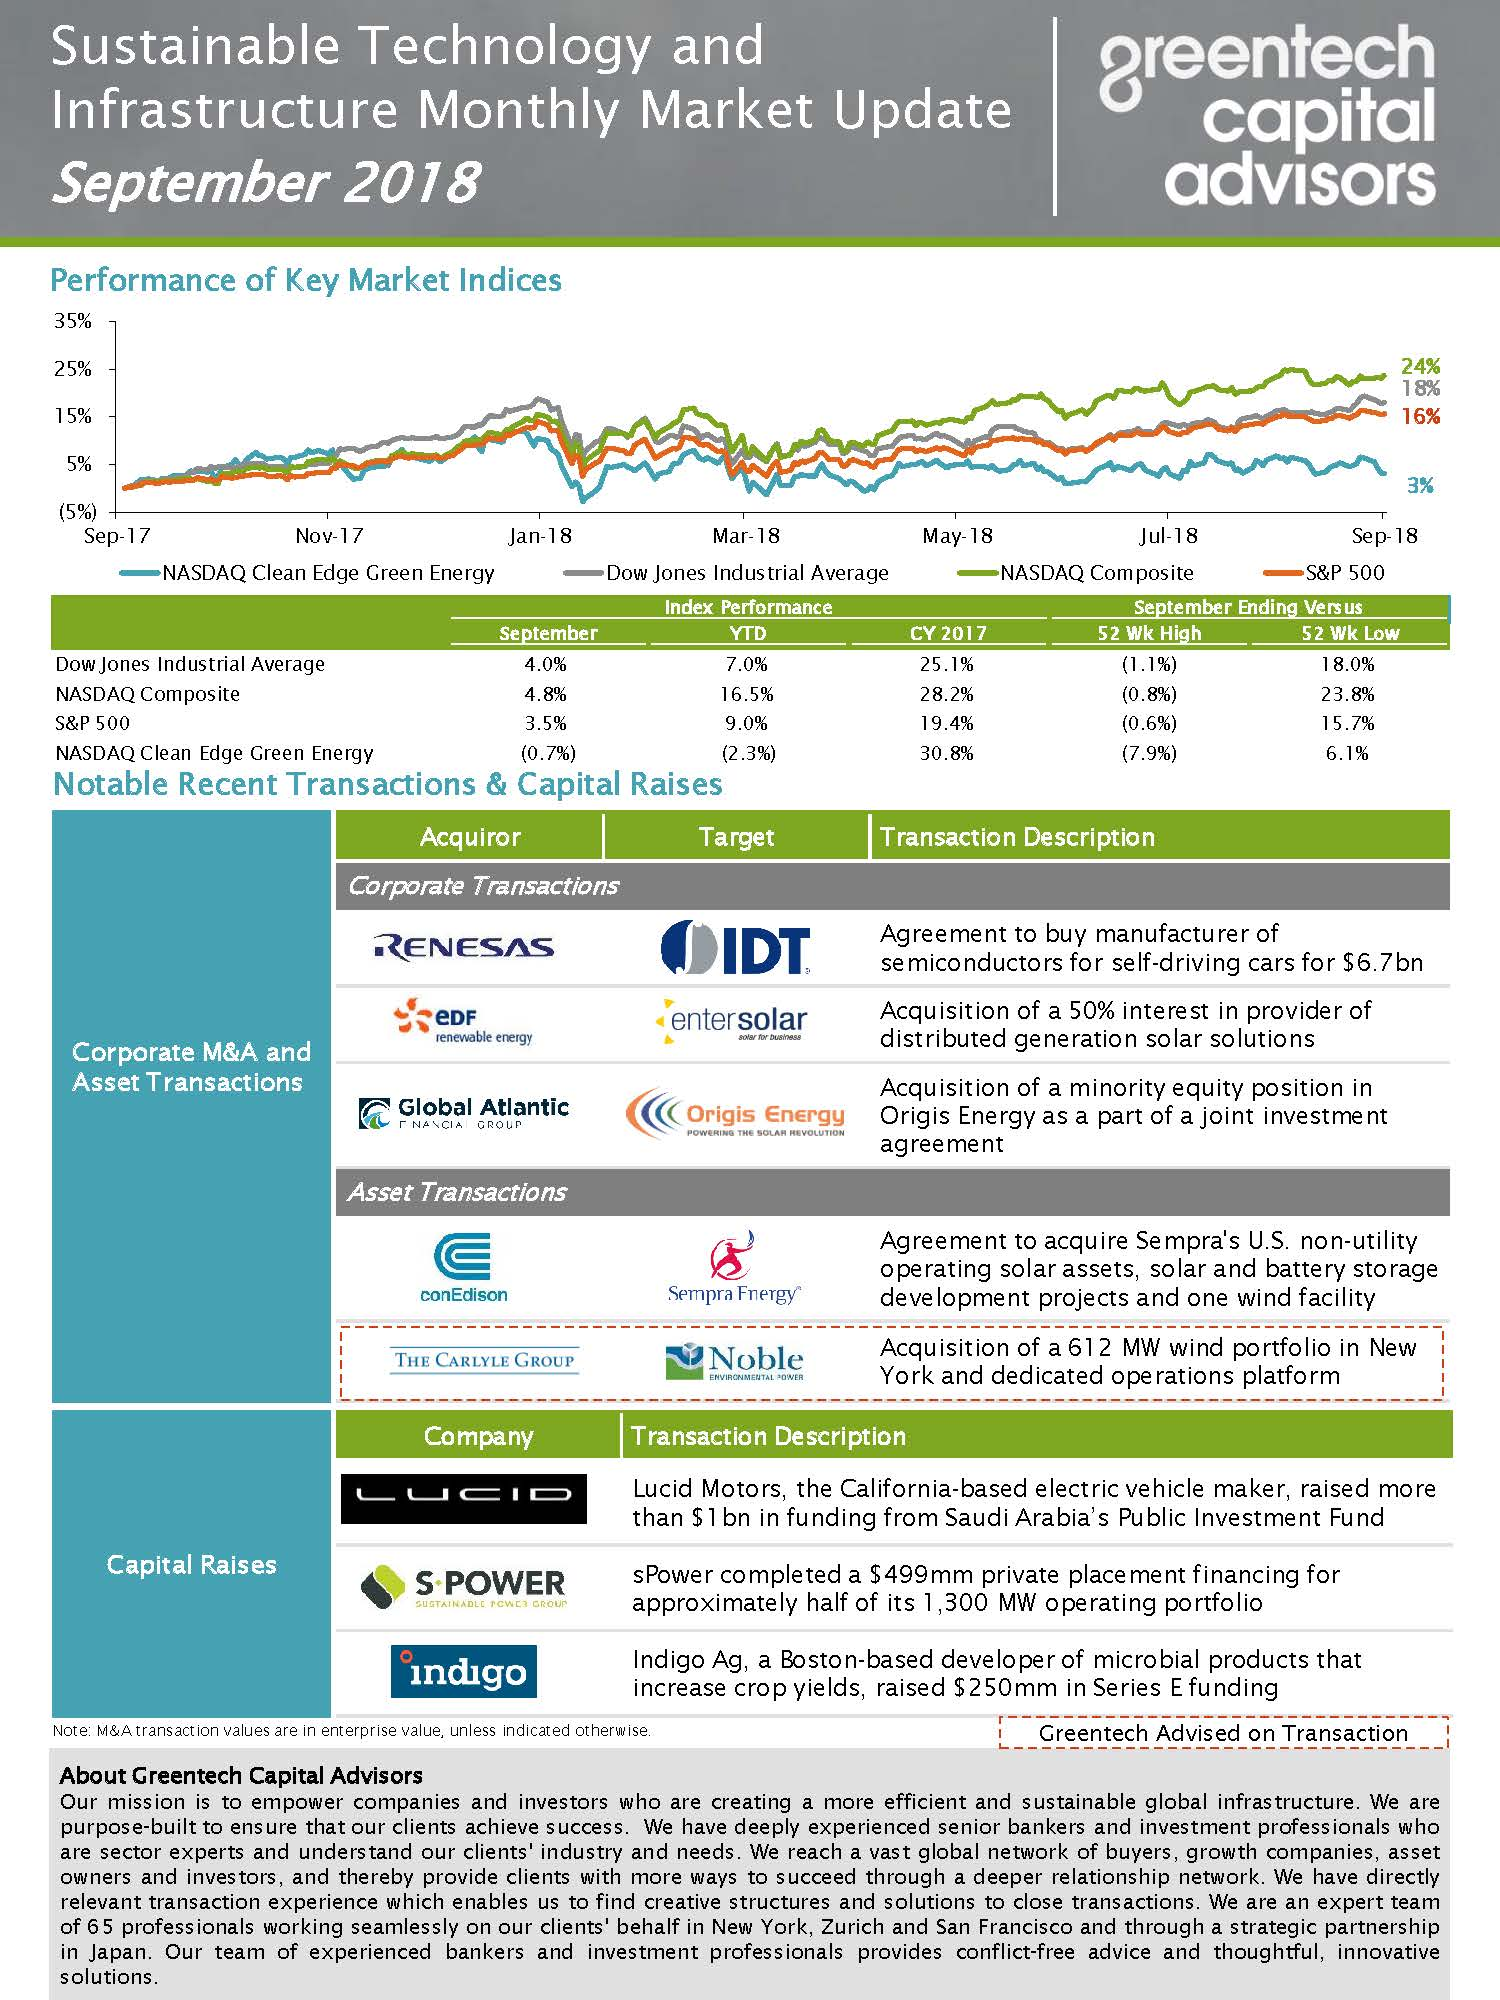 Sustainable Investing Monthly Market Update - September 2018